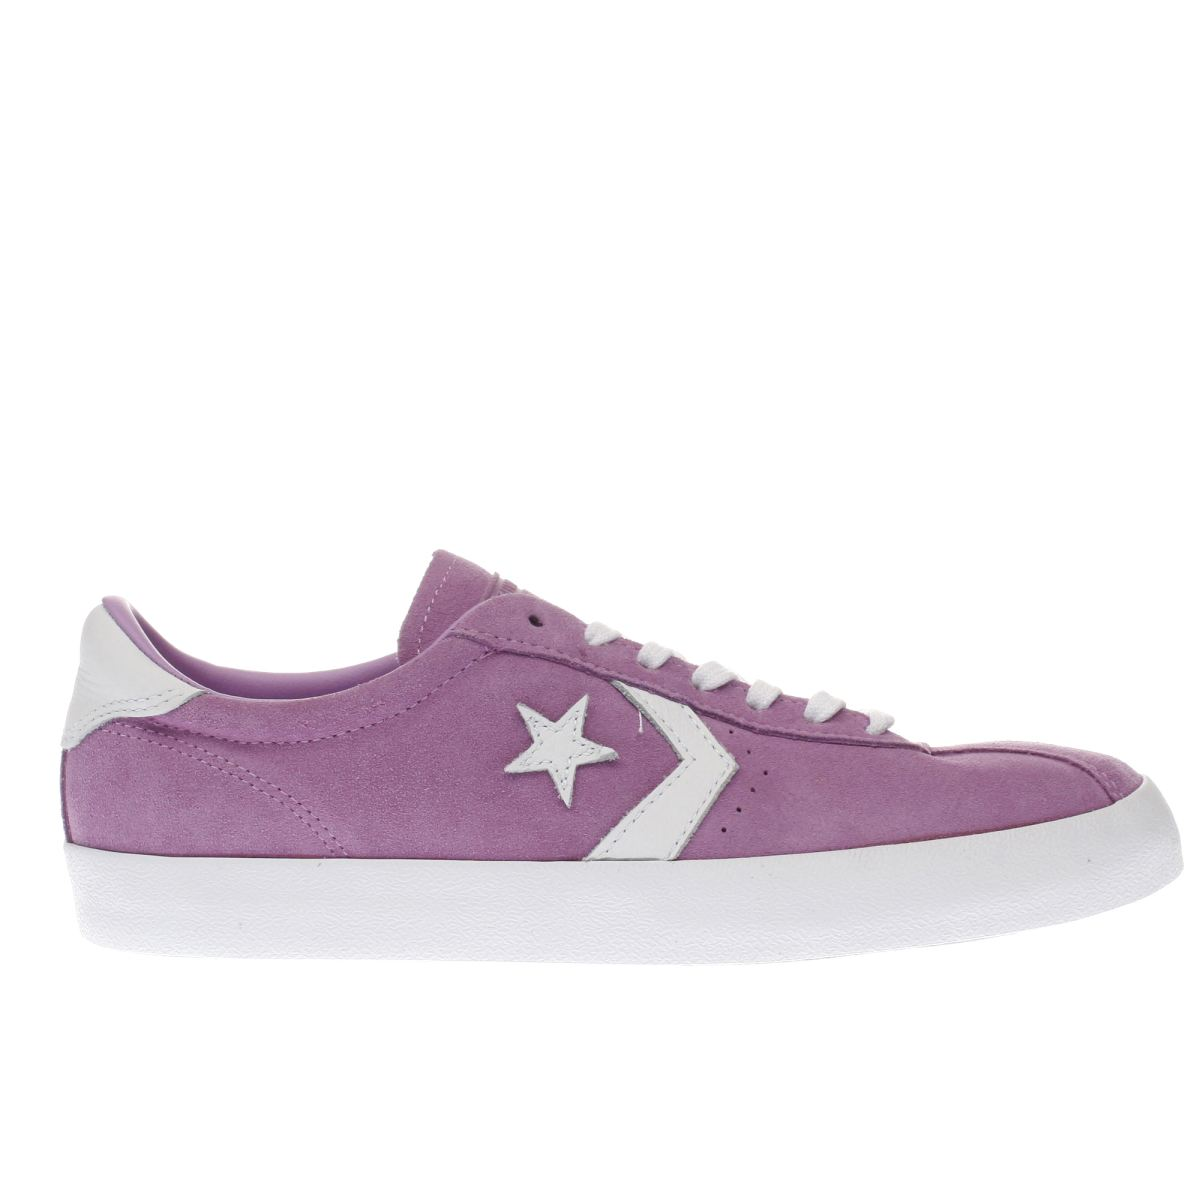 Converse Purple Breakpoint Suede Trainers